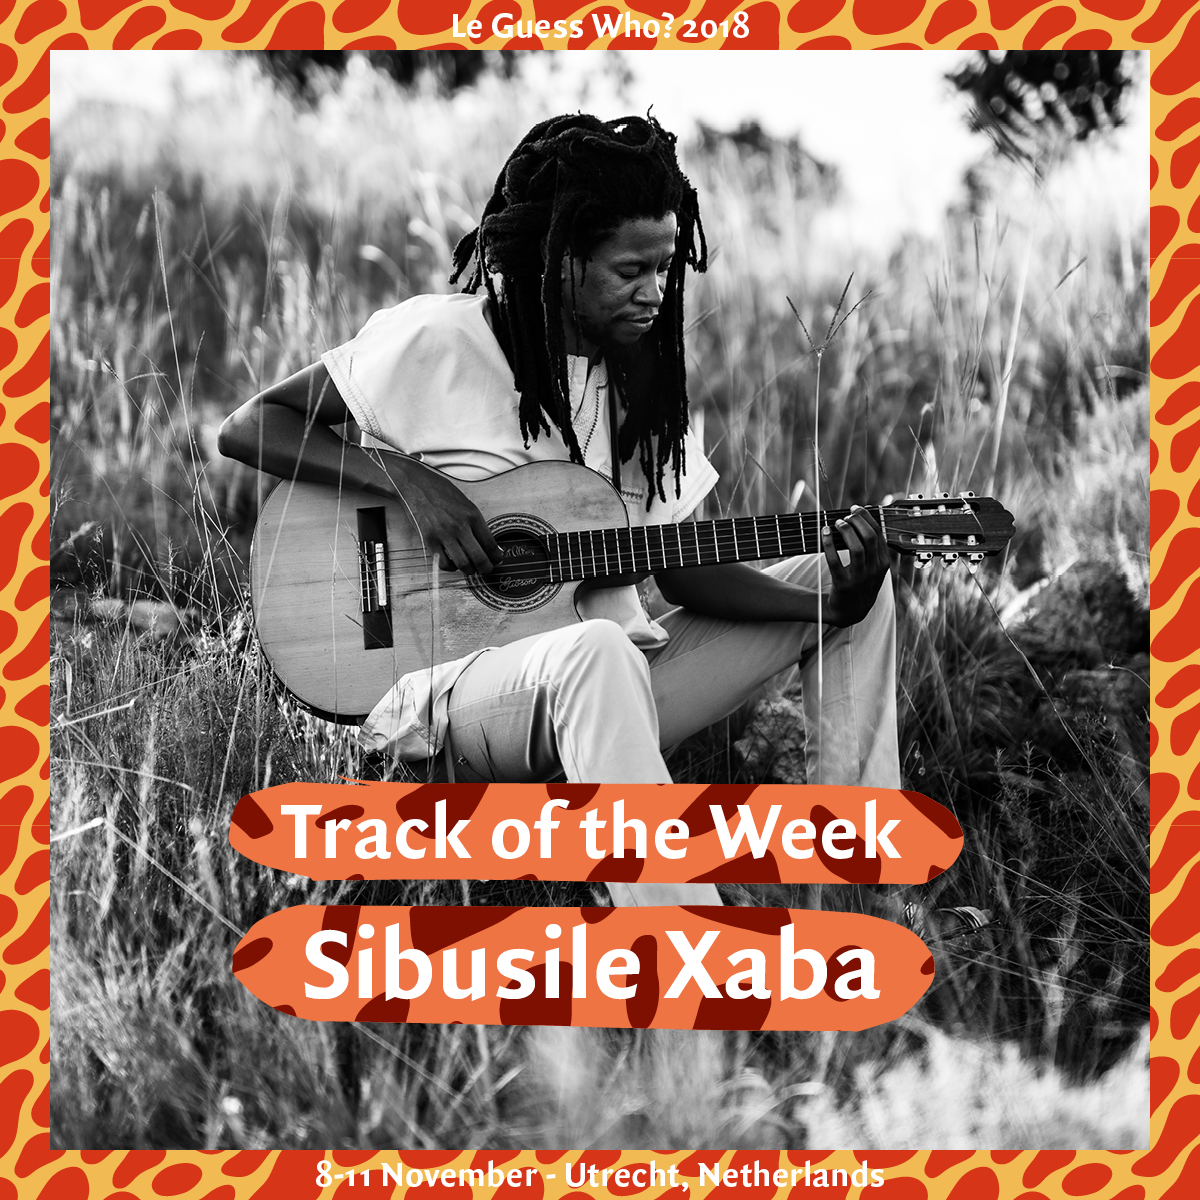 Track of the Week #12: Sibusile Xaba - 'Open Letter to Adoniah'